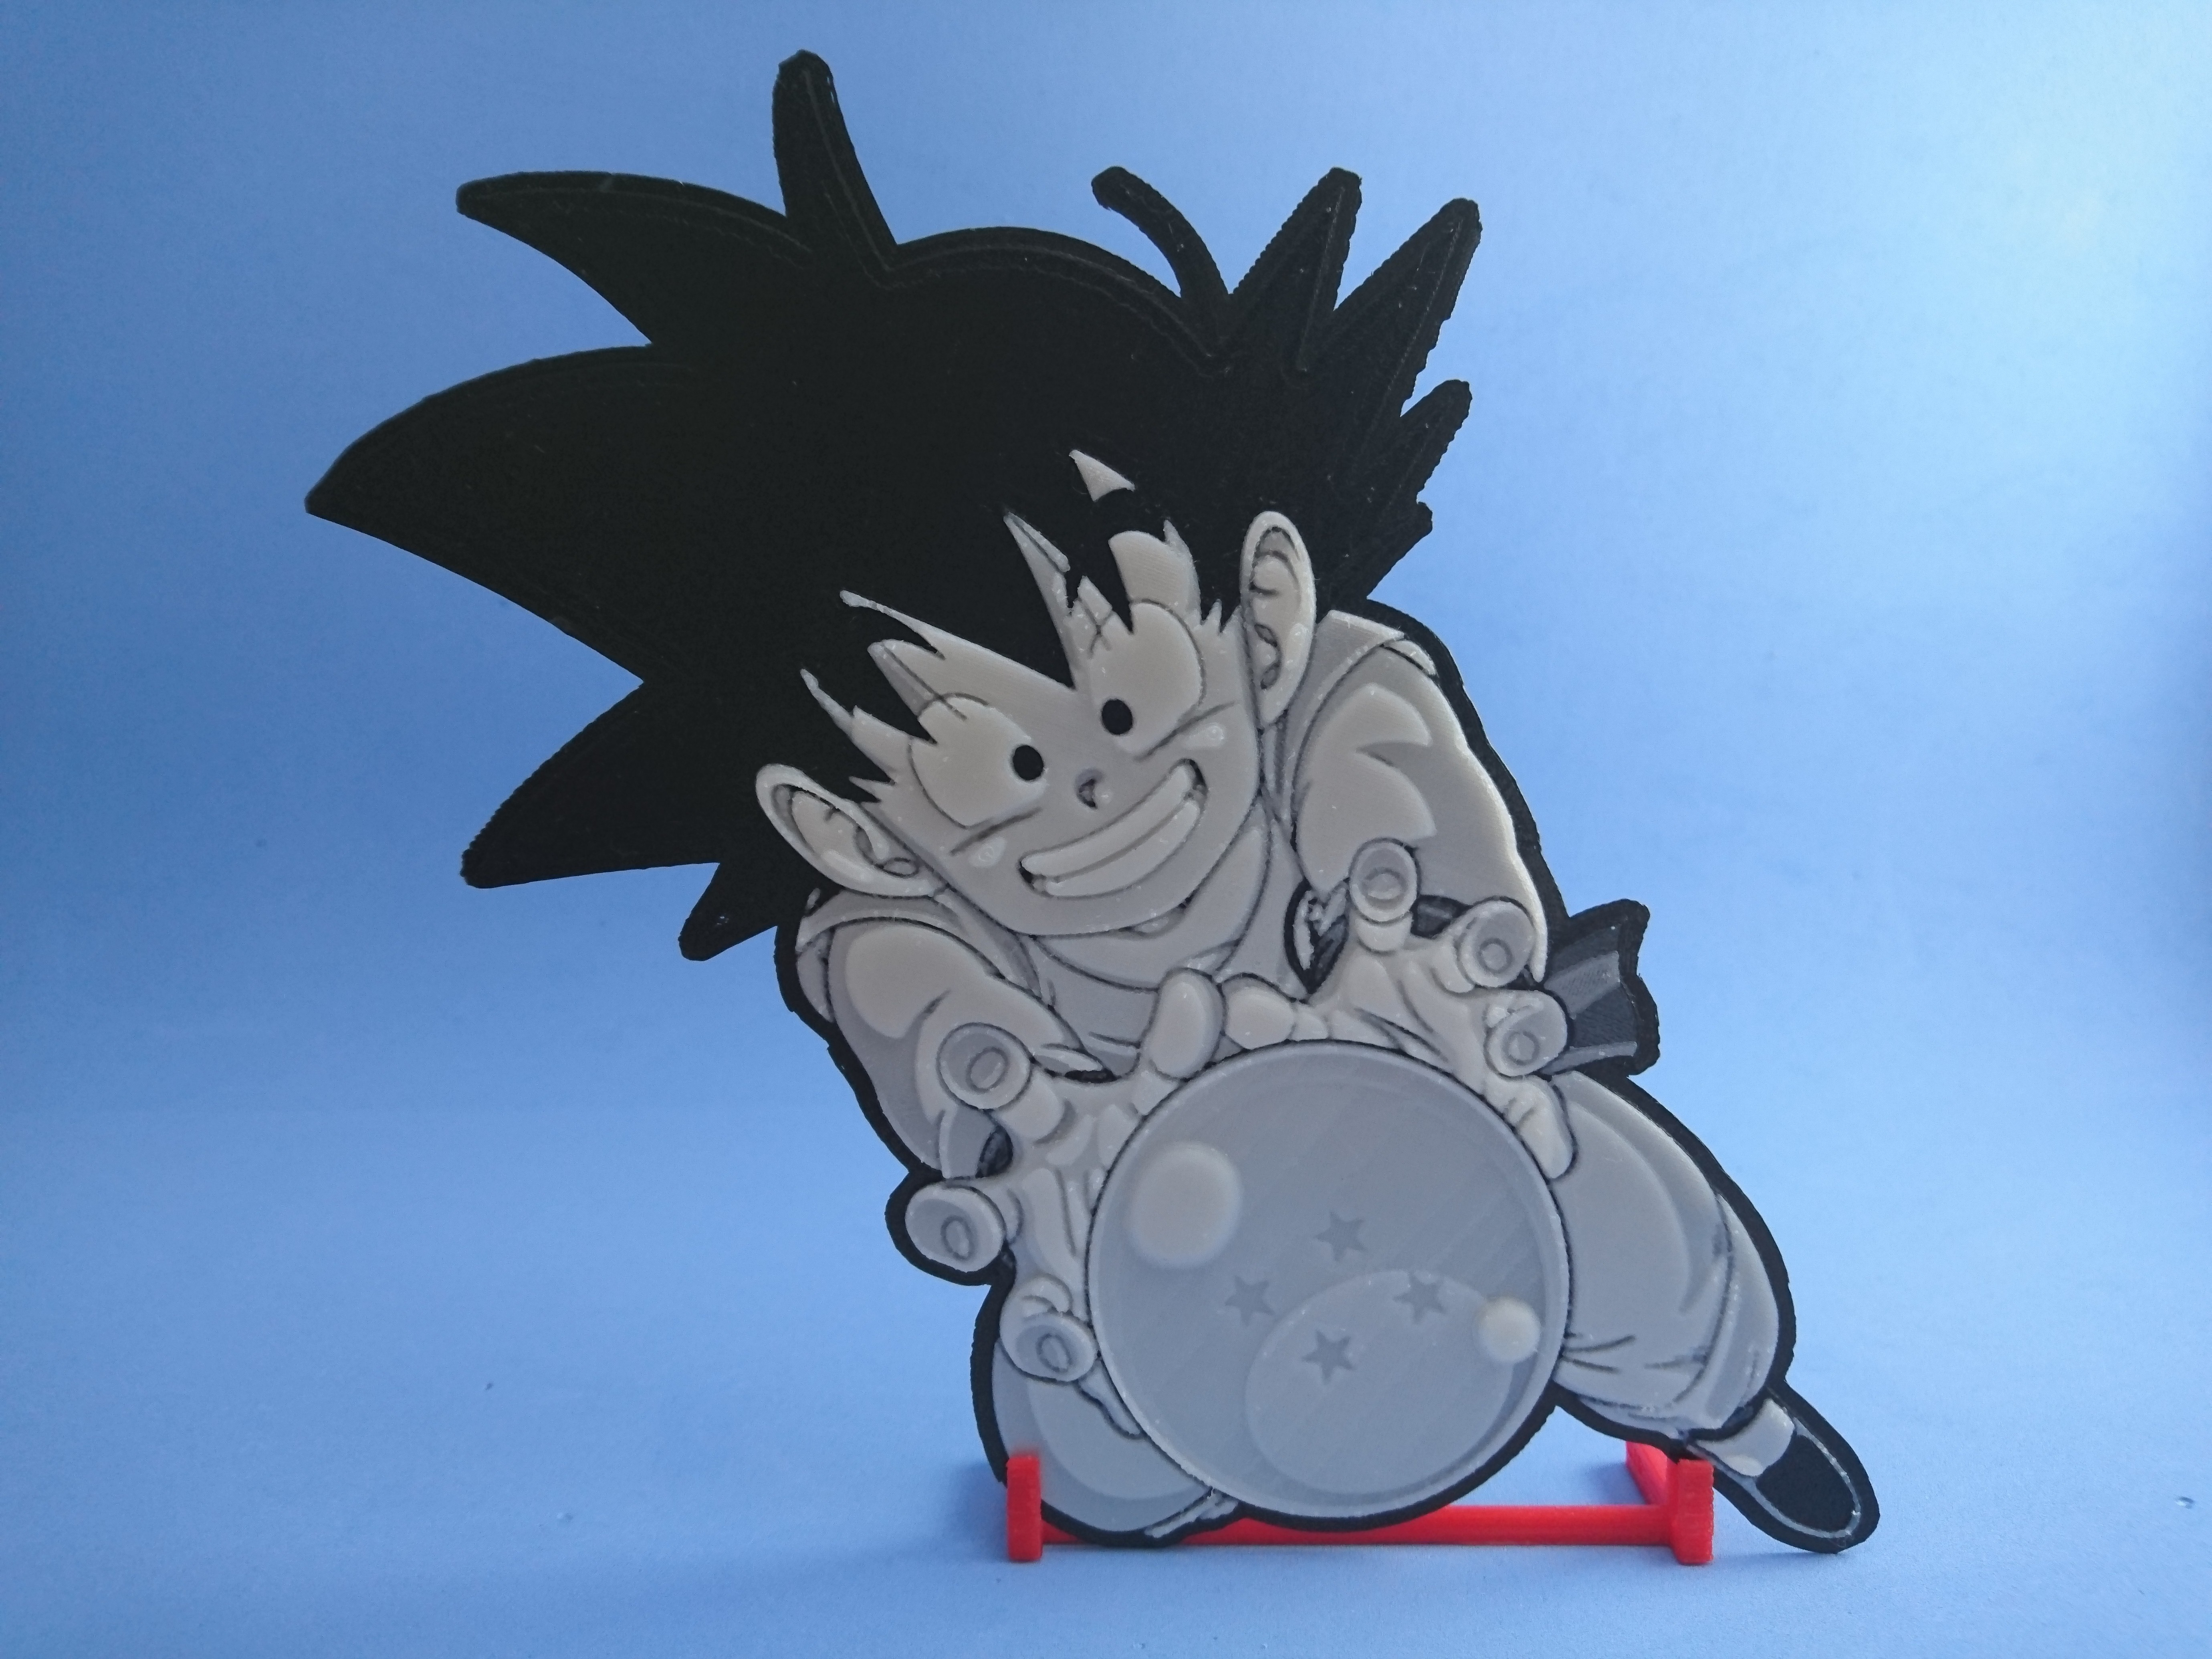 DSC_0277.JPG Download free STL file 3D Drawing Son Goku (DRAGON BALL) • 3D printing template, 3dlito